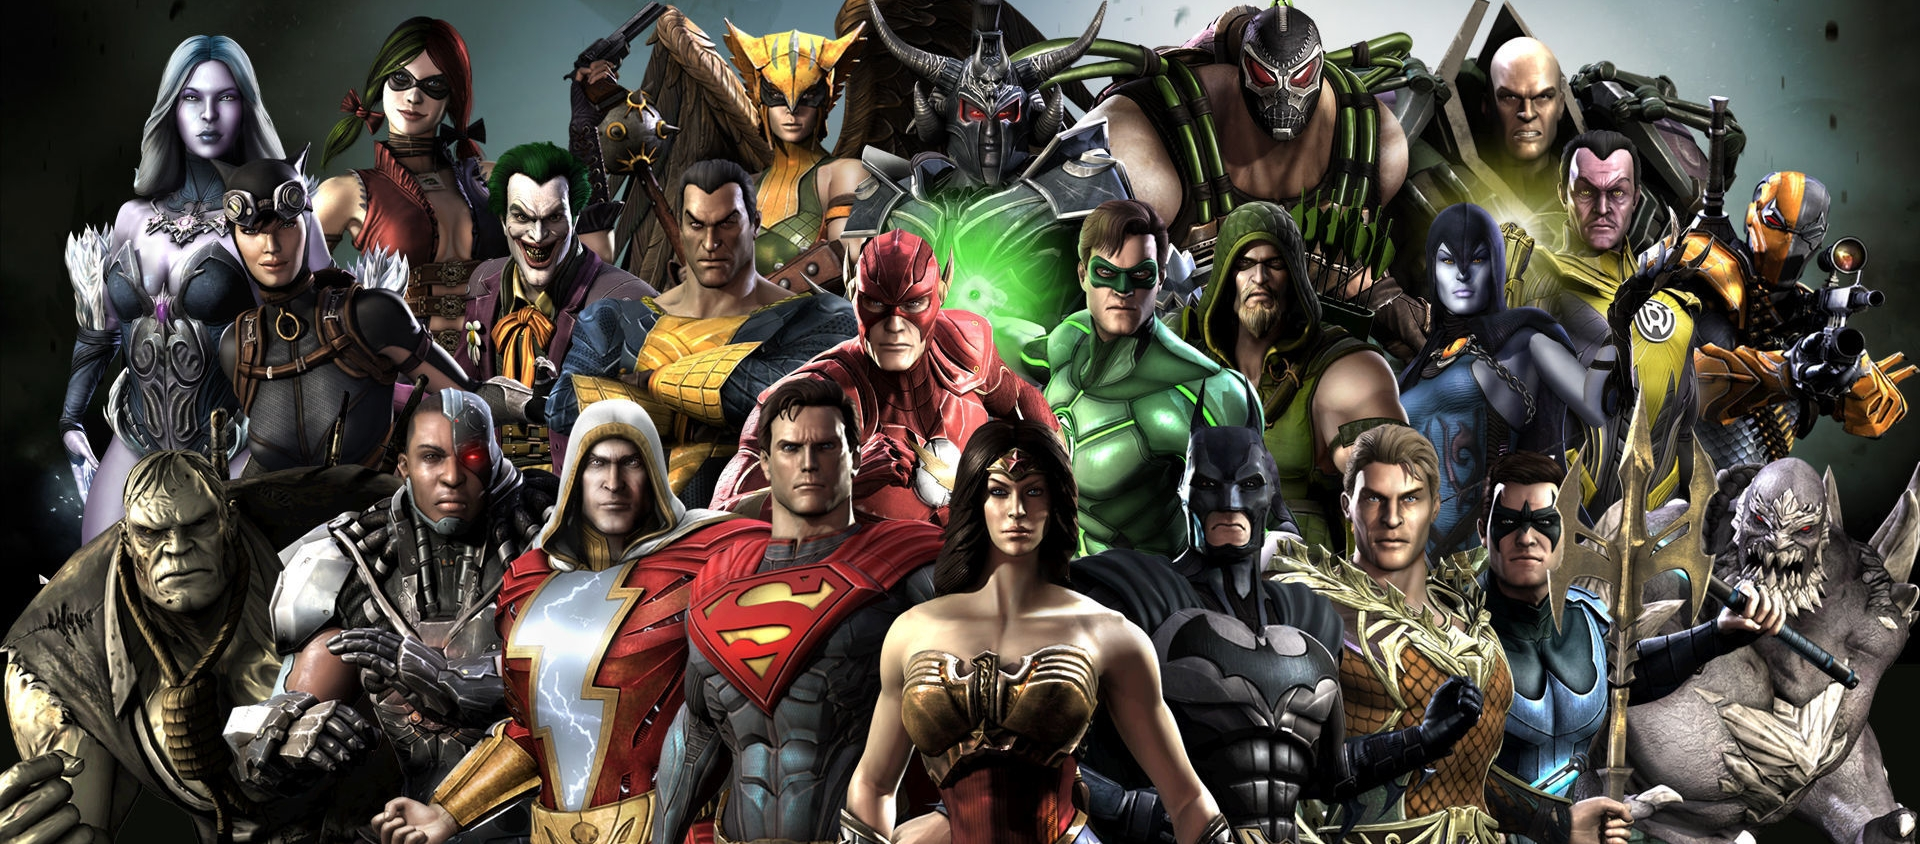 3220012-injustice-gods-among-us-wallpaper.jpg